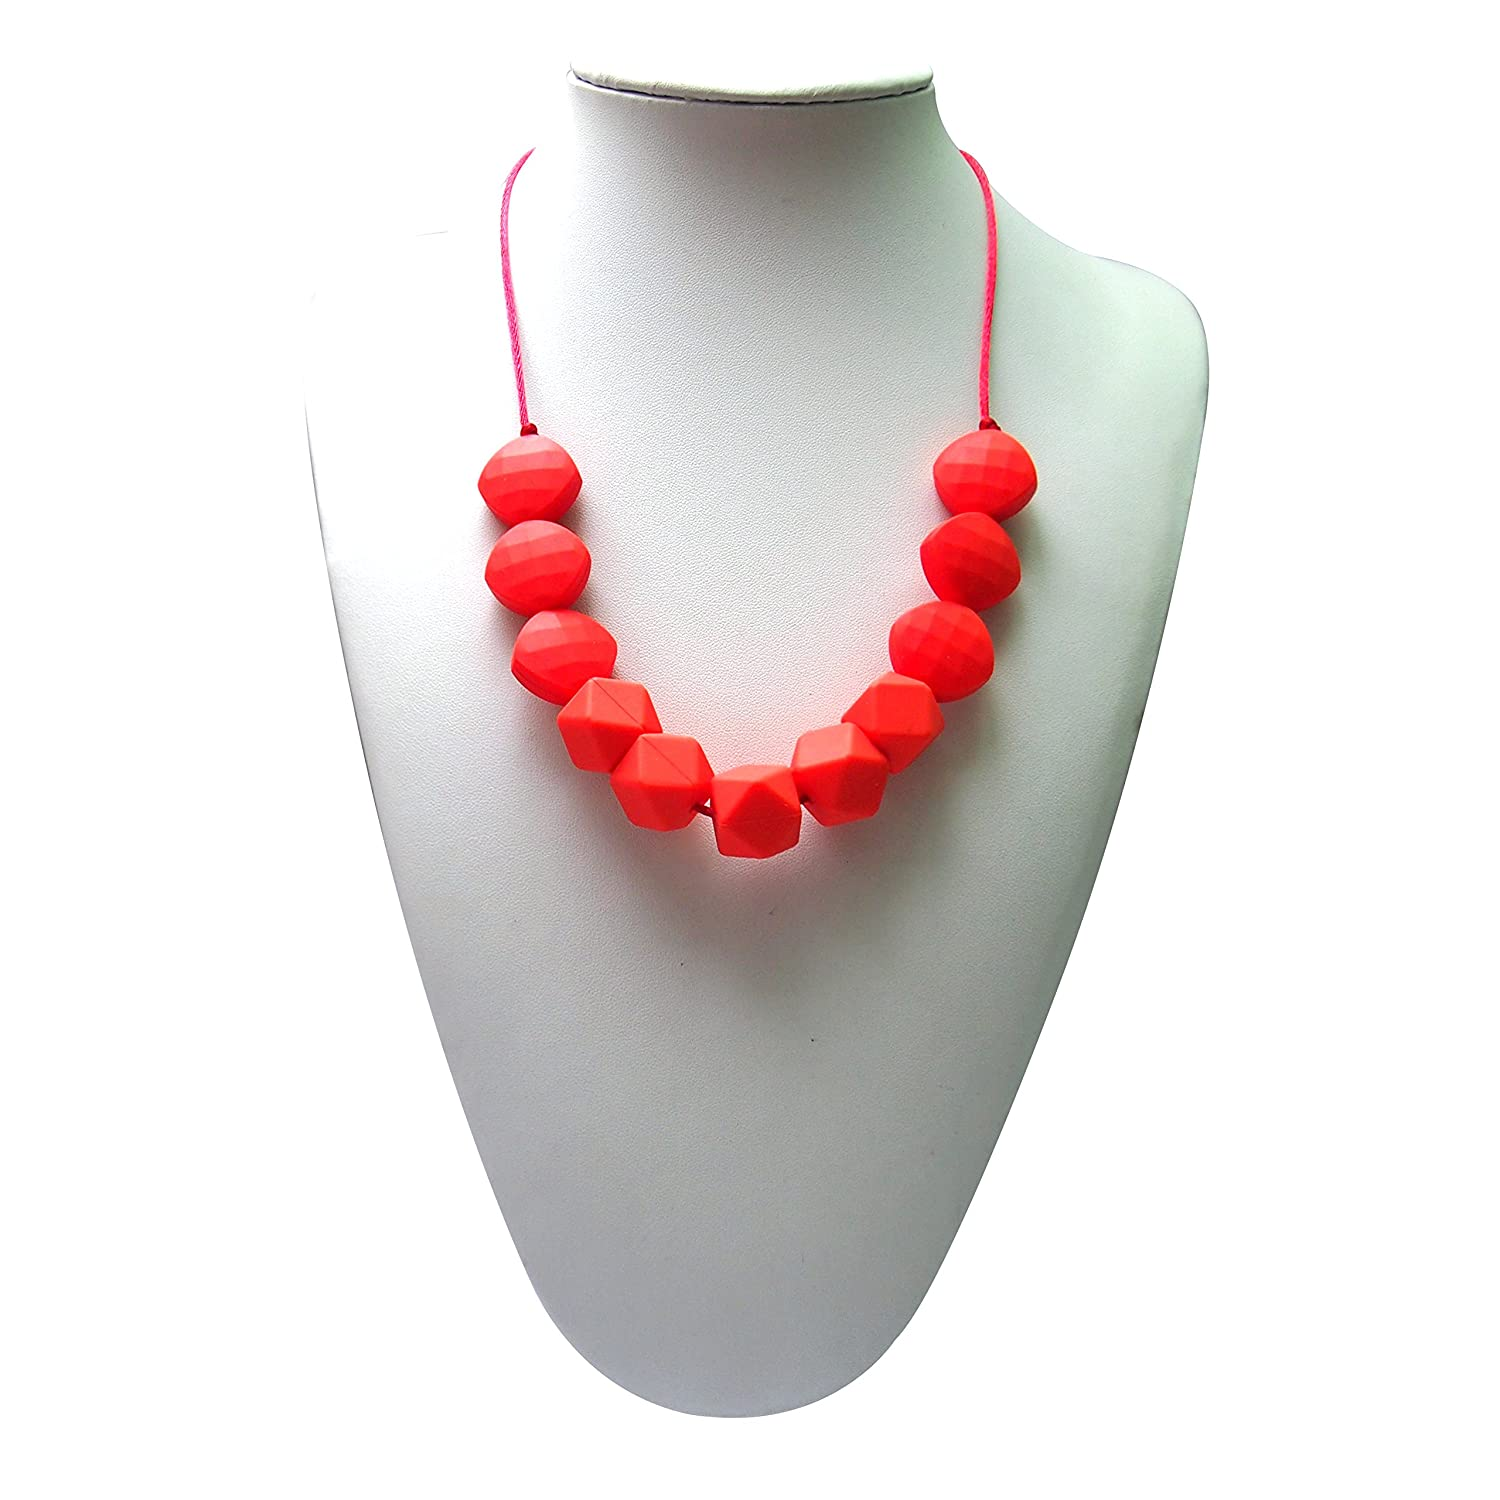 Lil' Jumbl Baby Teething Necklace | Organic Food Grade Silicone | BPA-Free (Red)